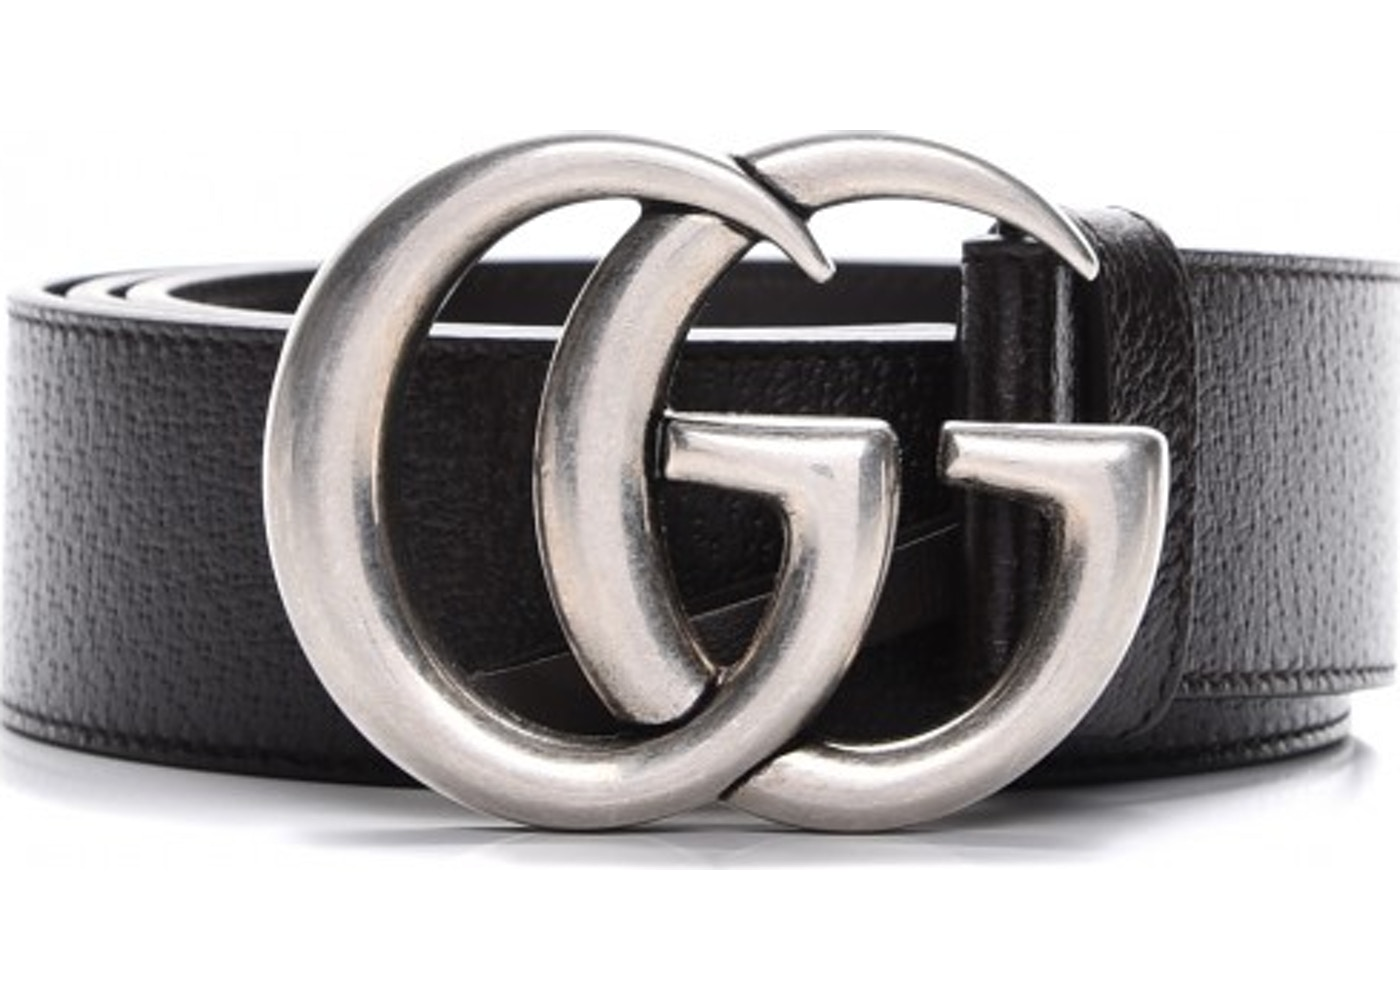 d31910a38e9c6 Gucci Double G Silver Buckle Textured Leather Belt 1.5 Width Black